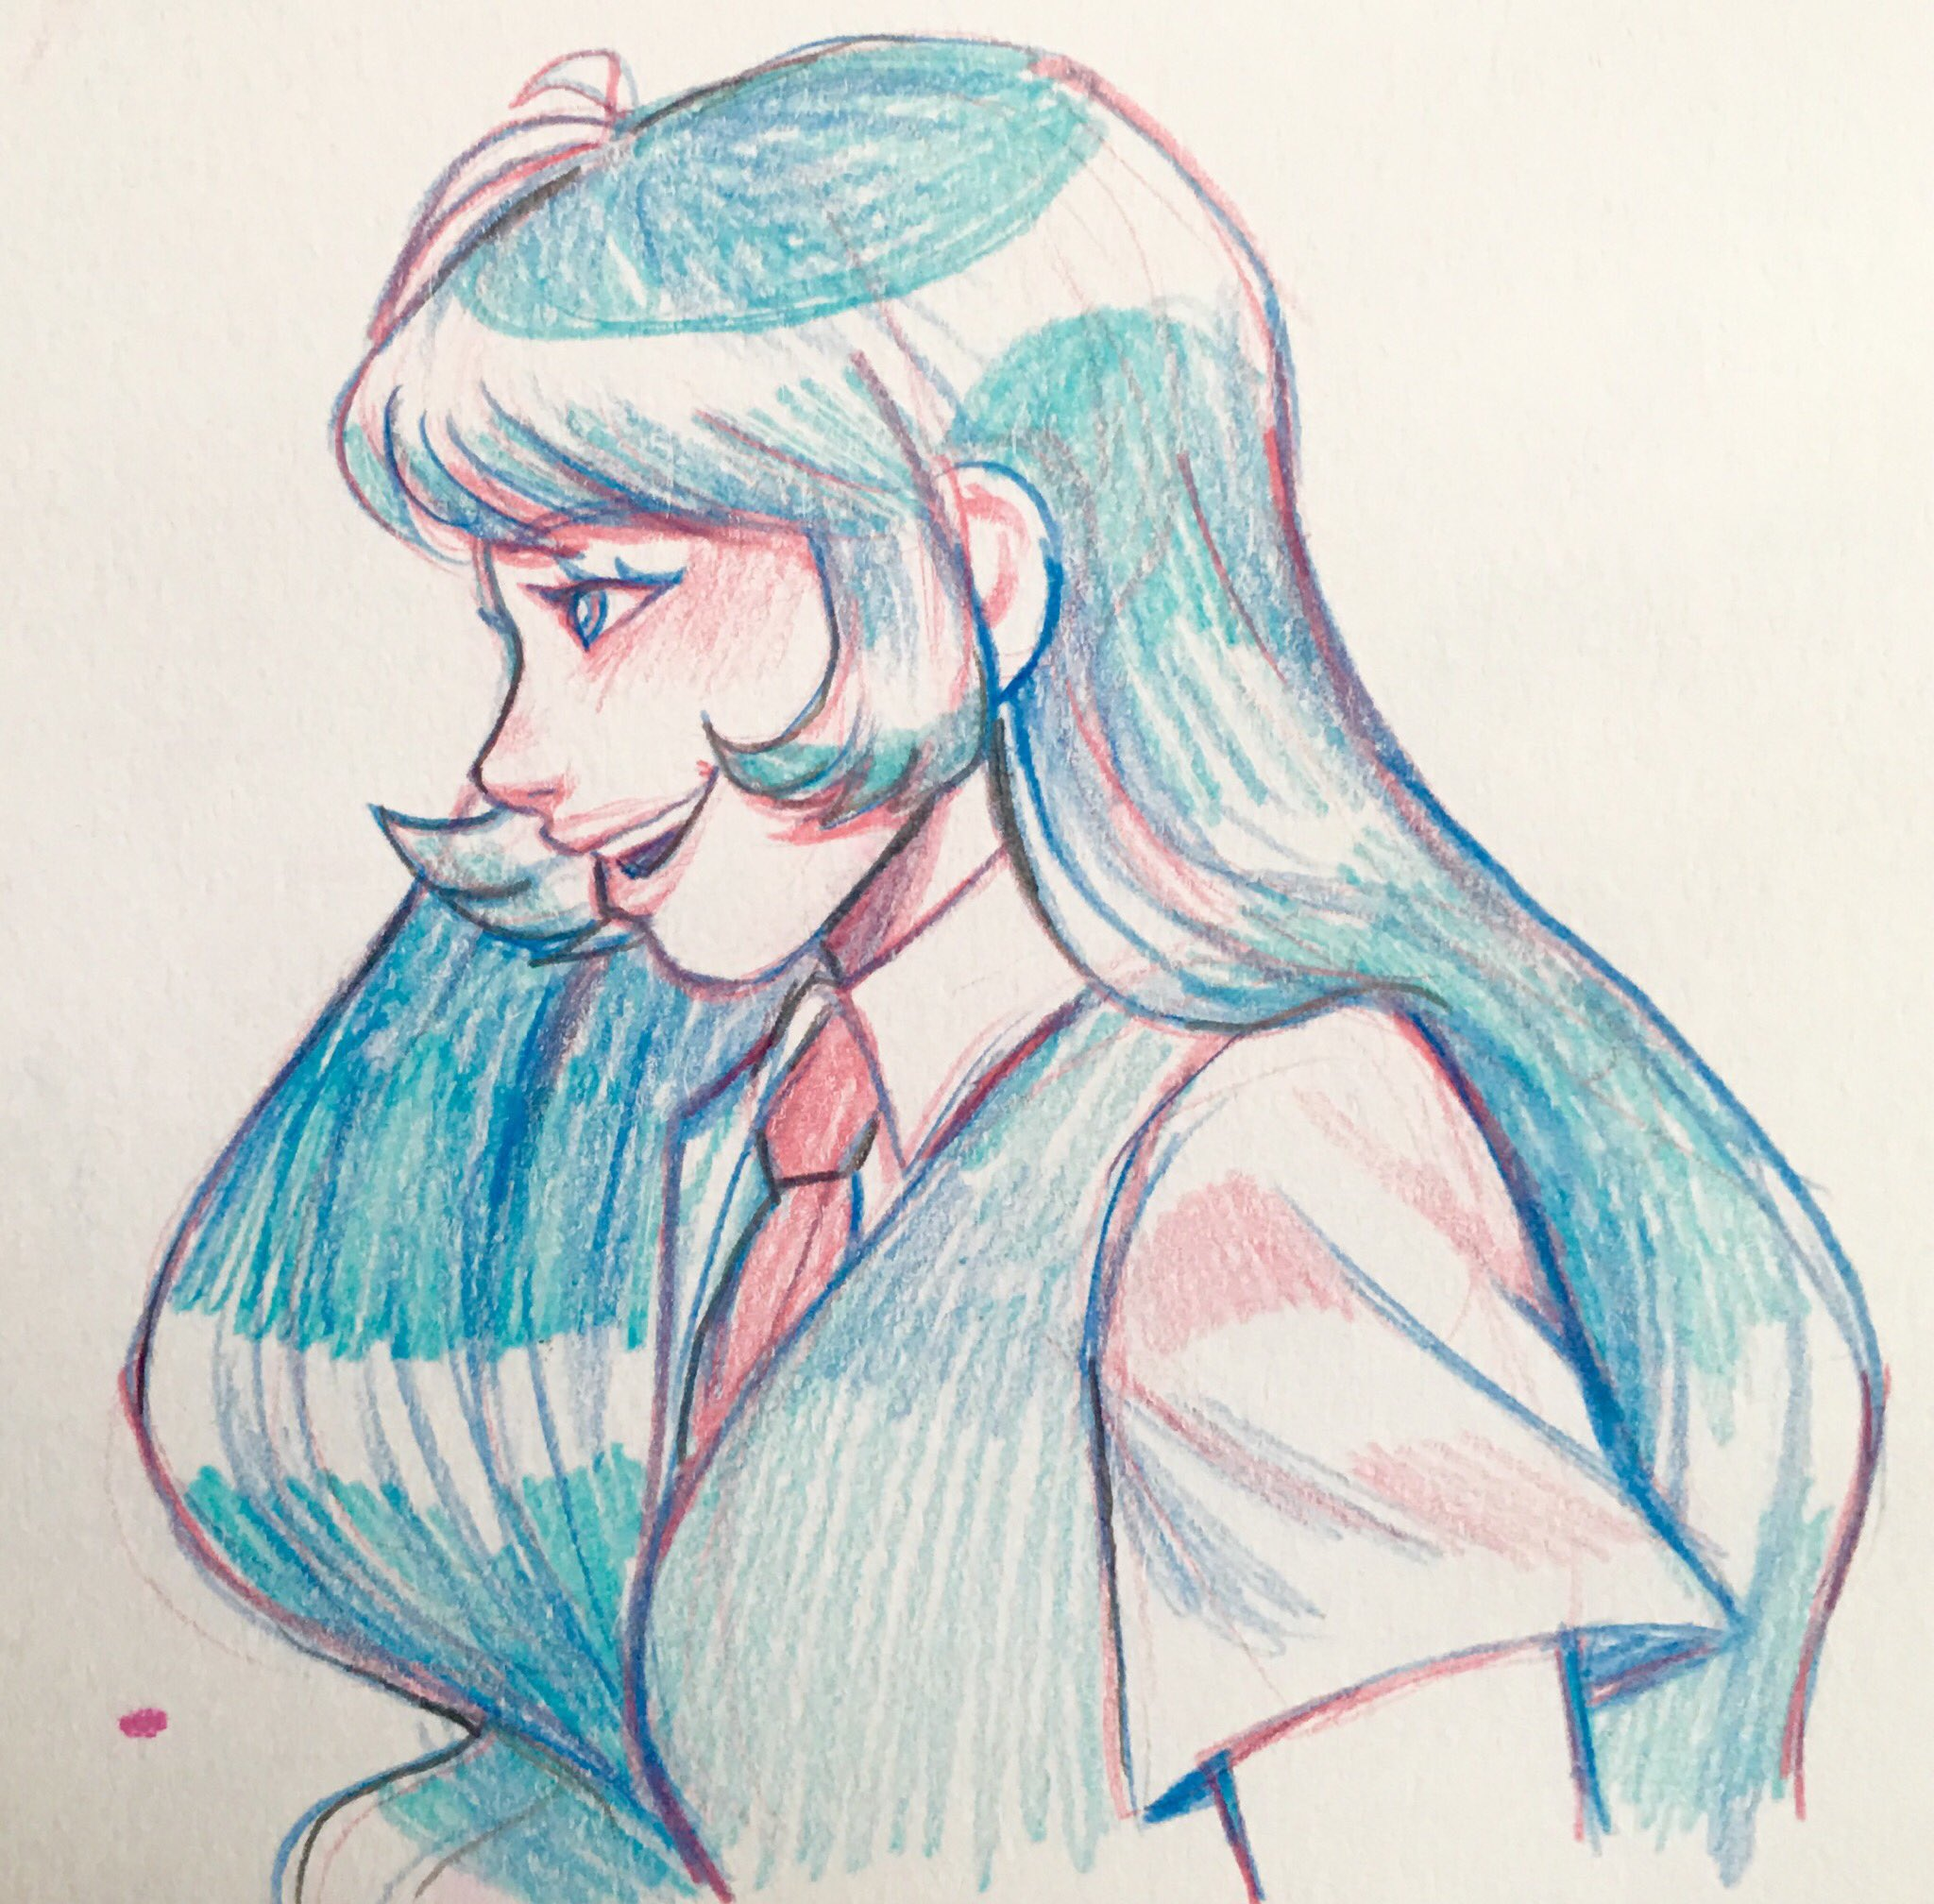 I keep forgetting to post this nejire I sketched the other day I kinda like how it turned out https://t.co/bNGgtmxU07